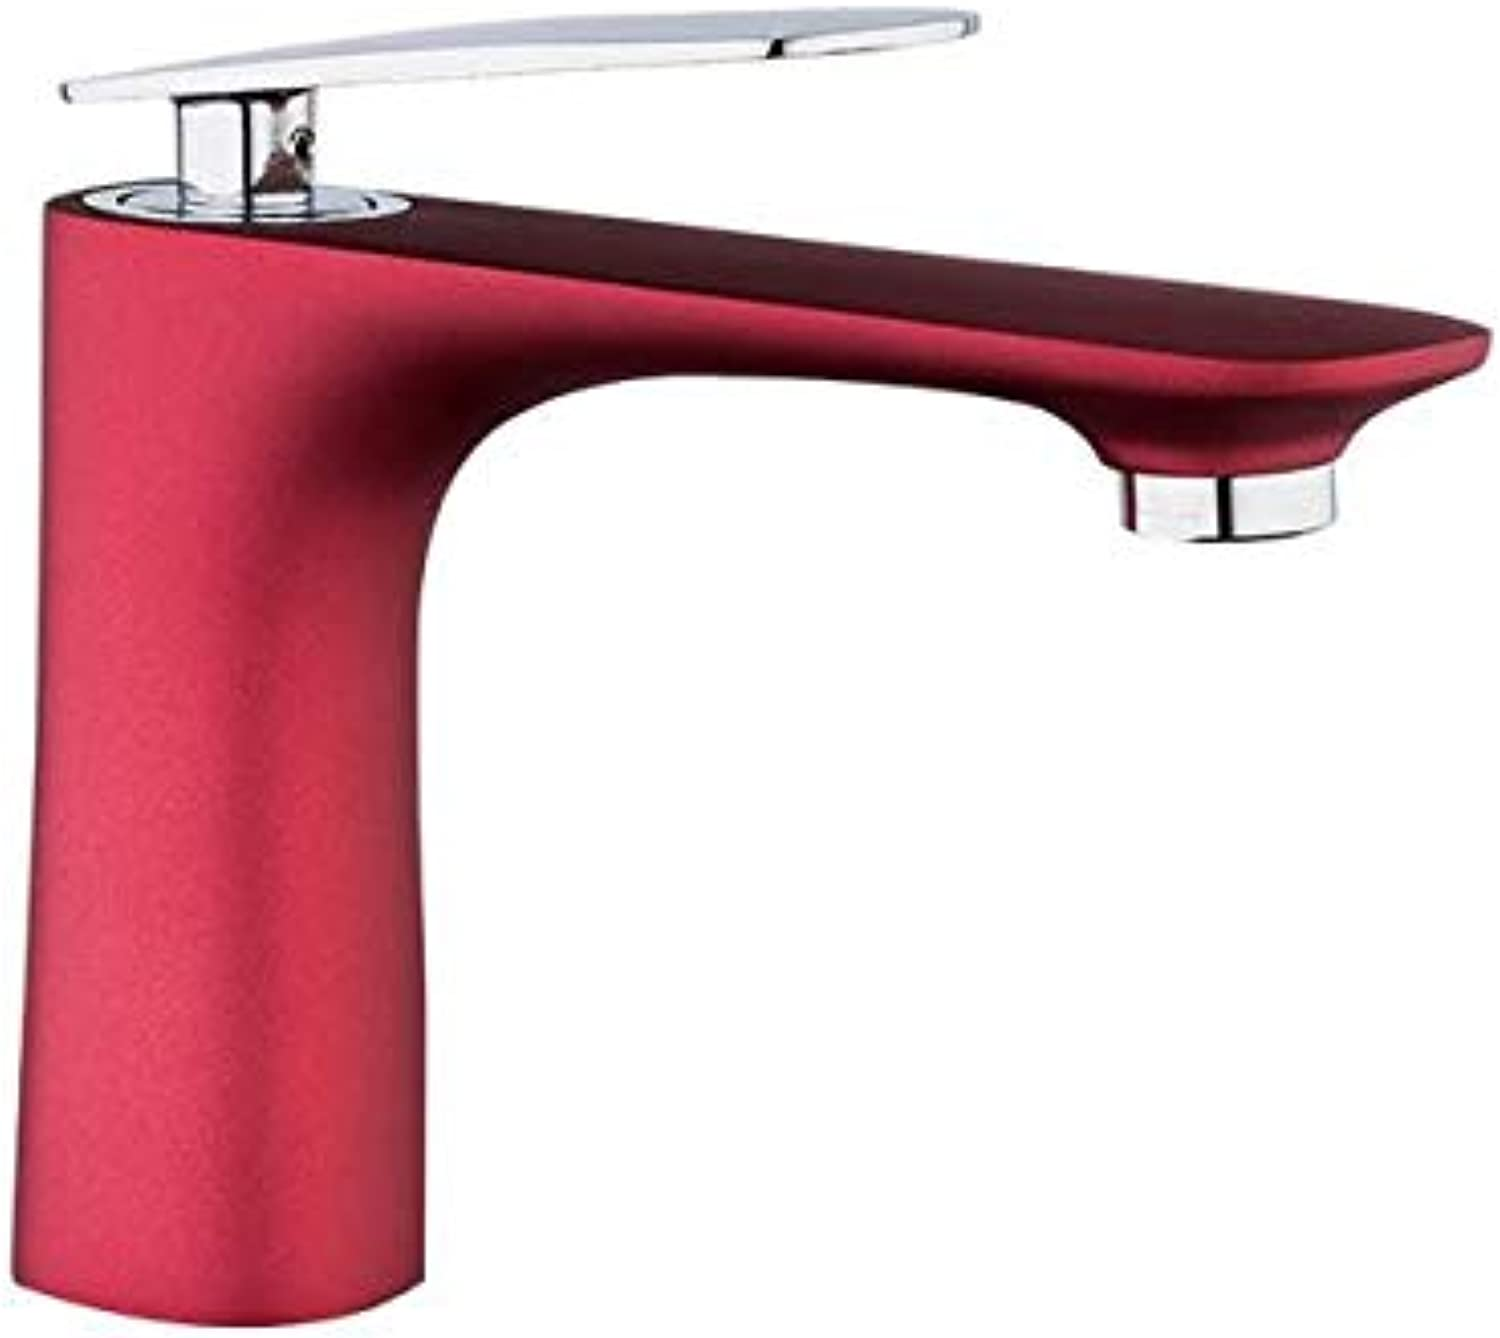 Makej High Quality Basin Faucet Water Tap Bathroom Faucet Solid Red Brass Single Handle Sink Cold and Hot Water Mixer Tap